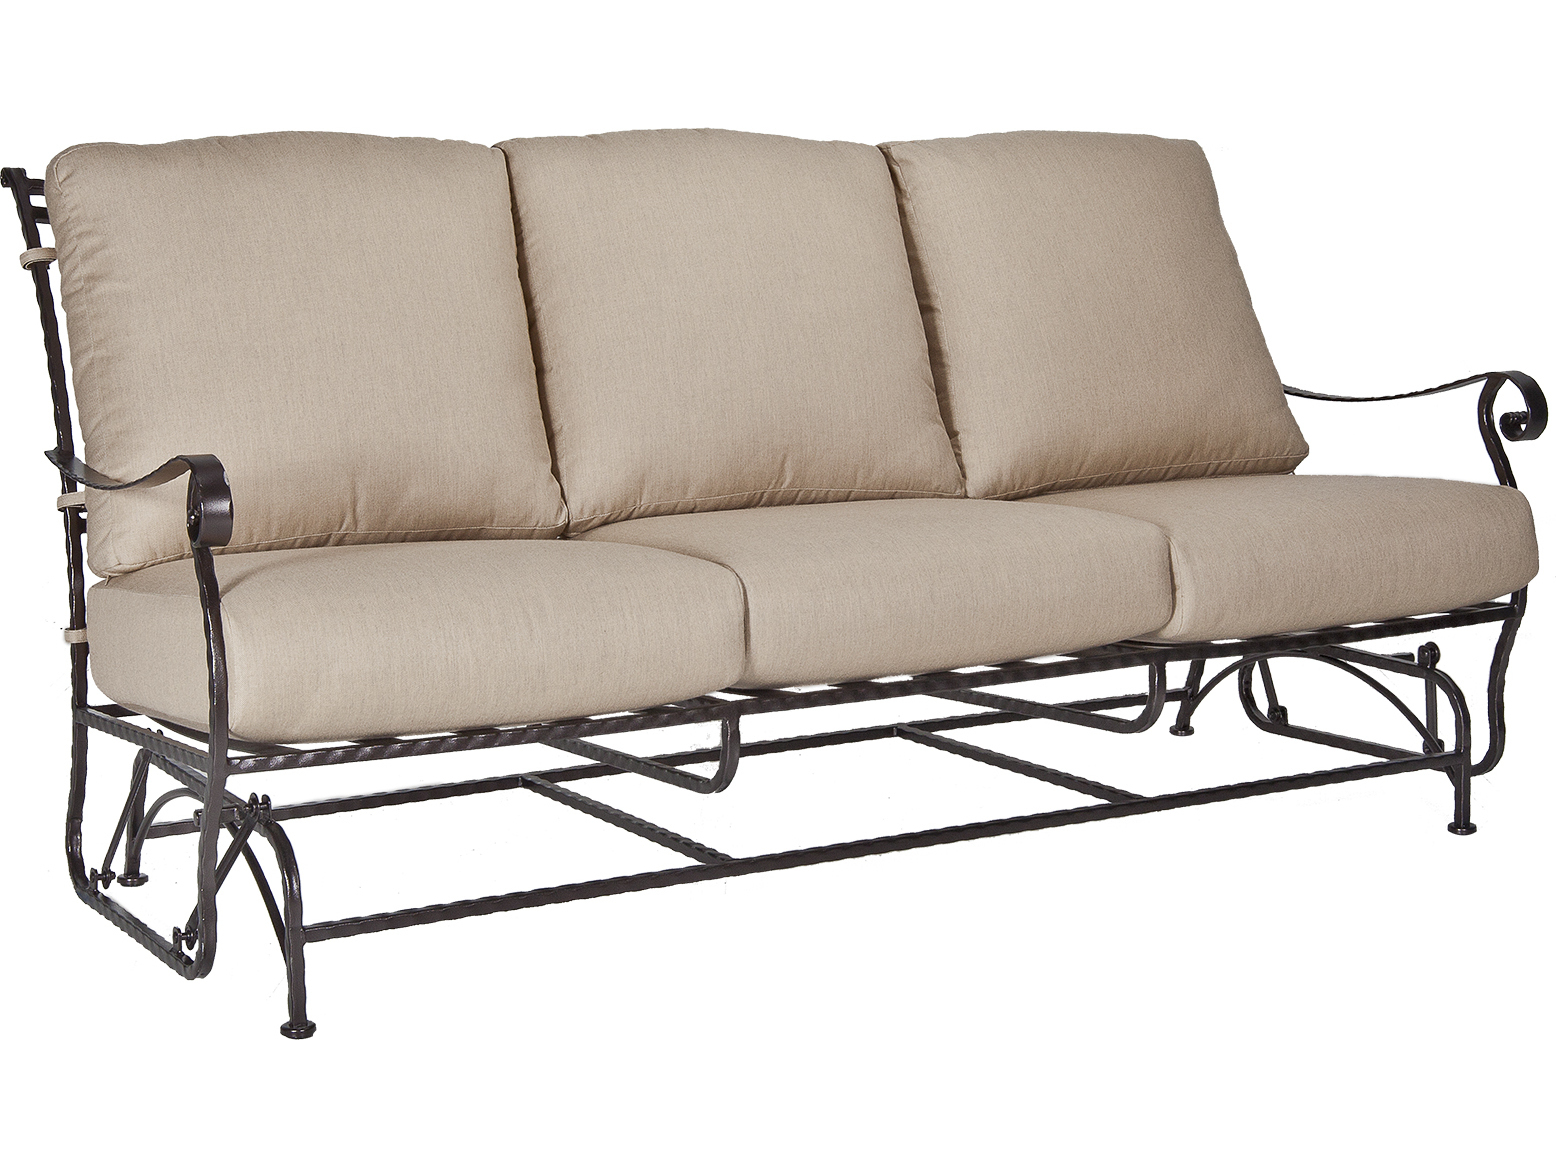 Ow Lee San Cristobal Wrought Iron Three Seat Sofa Glider Ow6953g